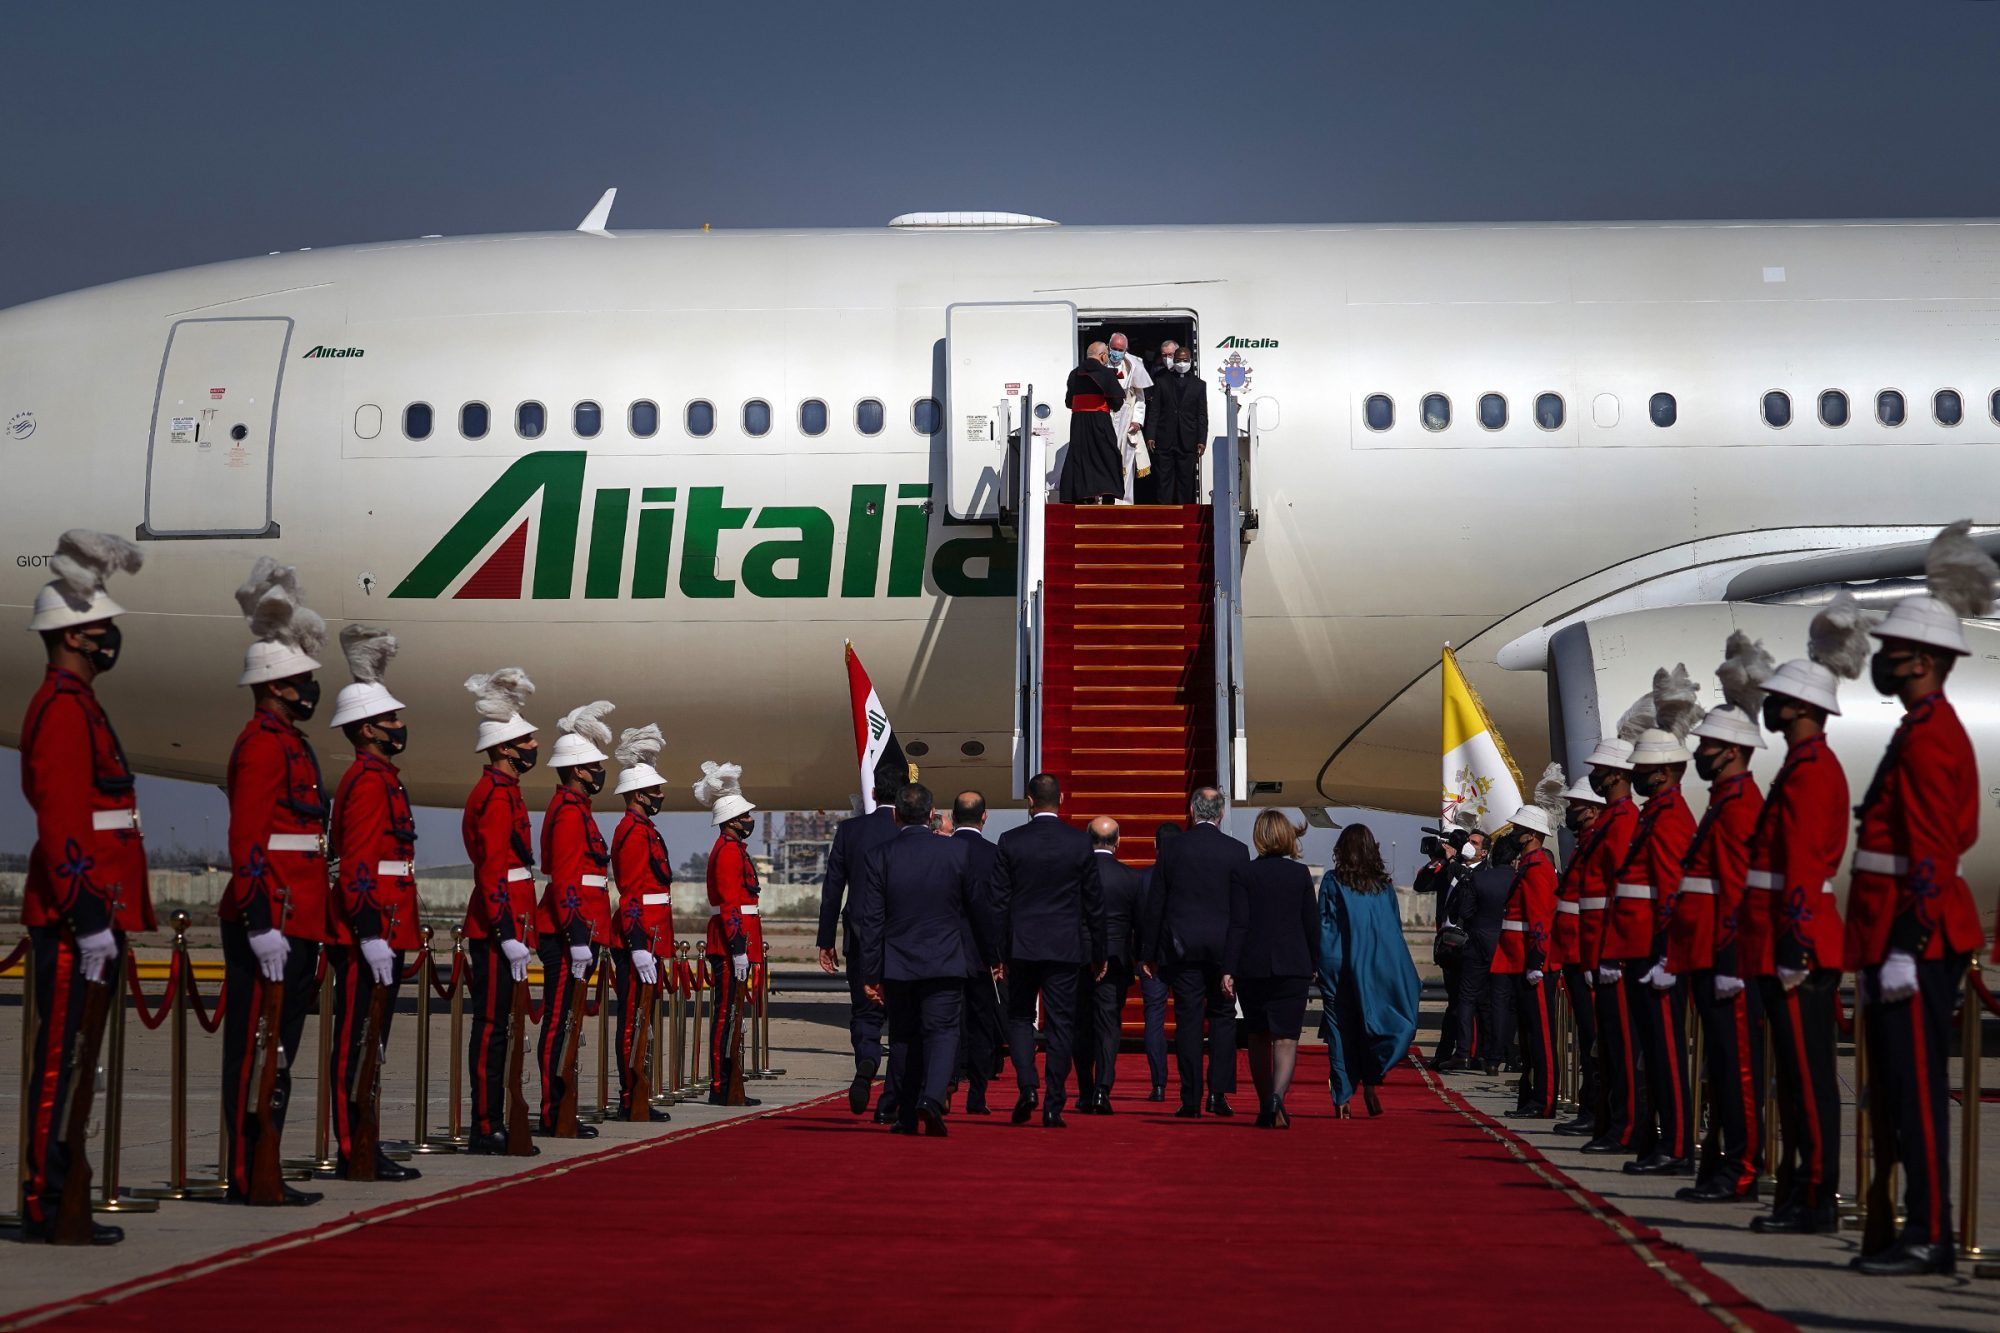 Pope Francis leaves the Alitalia aircraft that transported him to Iraq, at Baghdad Airport, on March 5, 2021